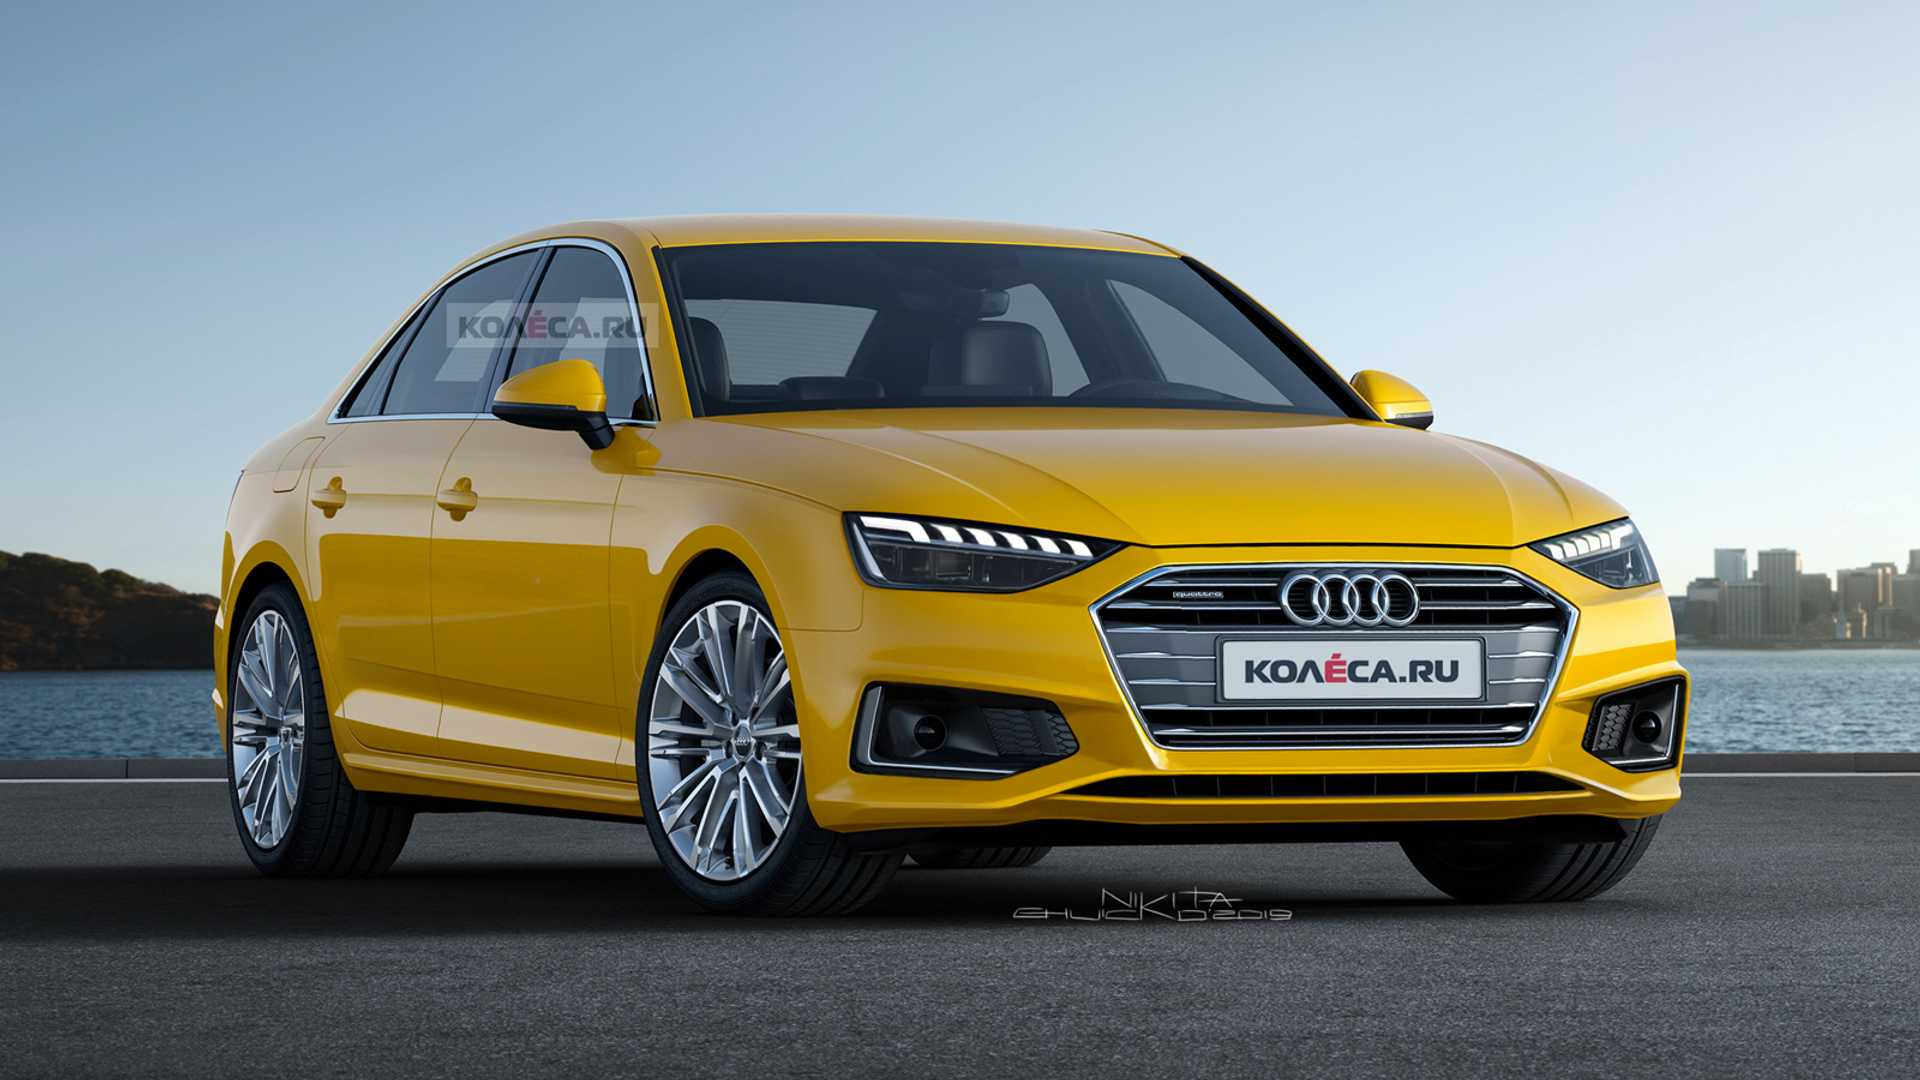 92 The Best Audi Modellen 2020 Redesign And Concept